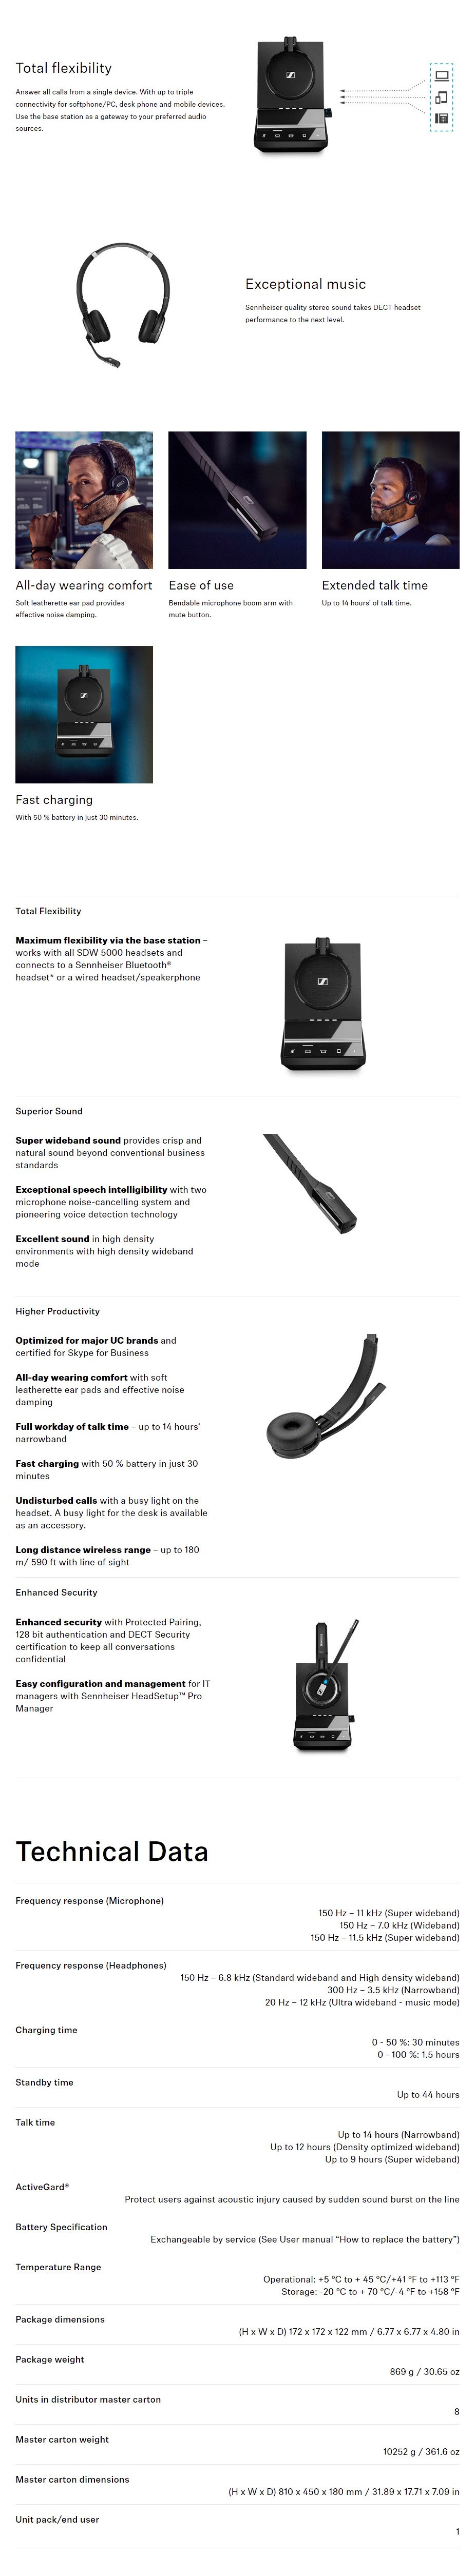 Sennheiser SDW 5066 DECT Wireless Headset with Base Station + BTD 800 Dongle - Overview 1